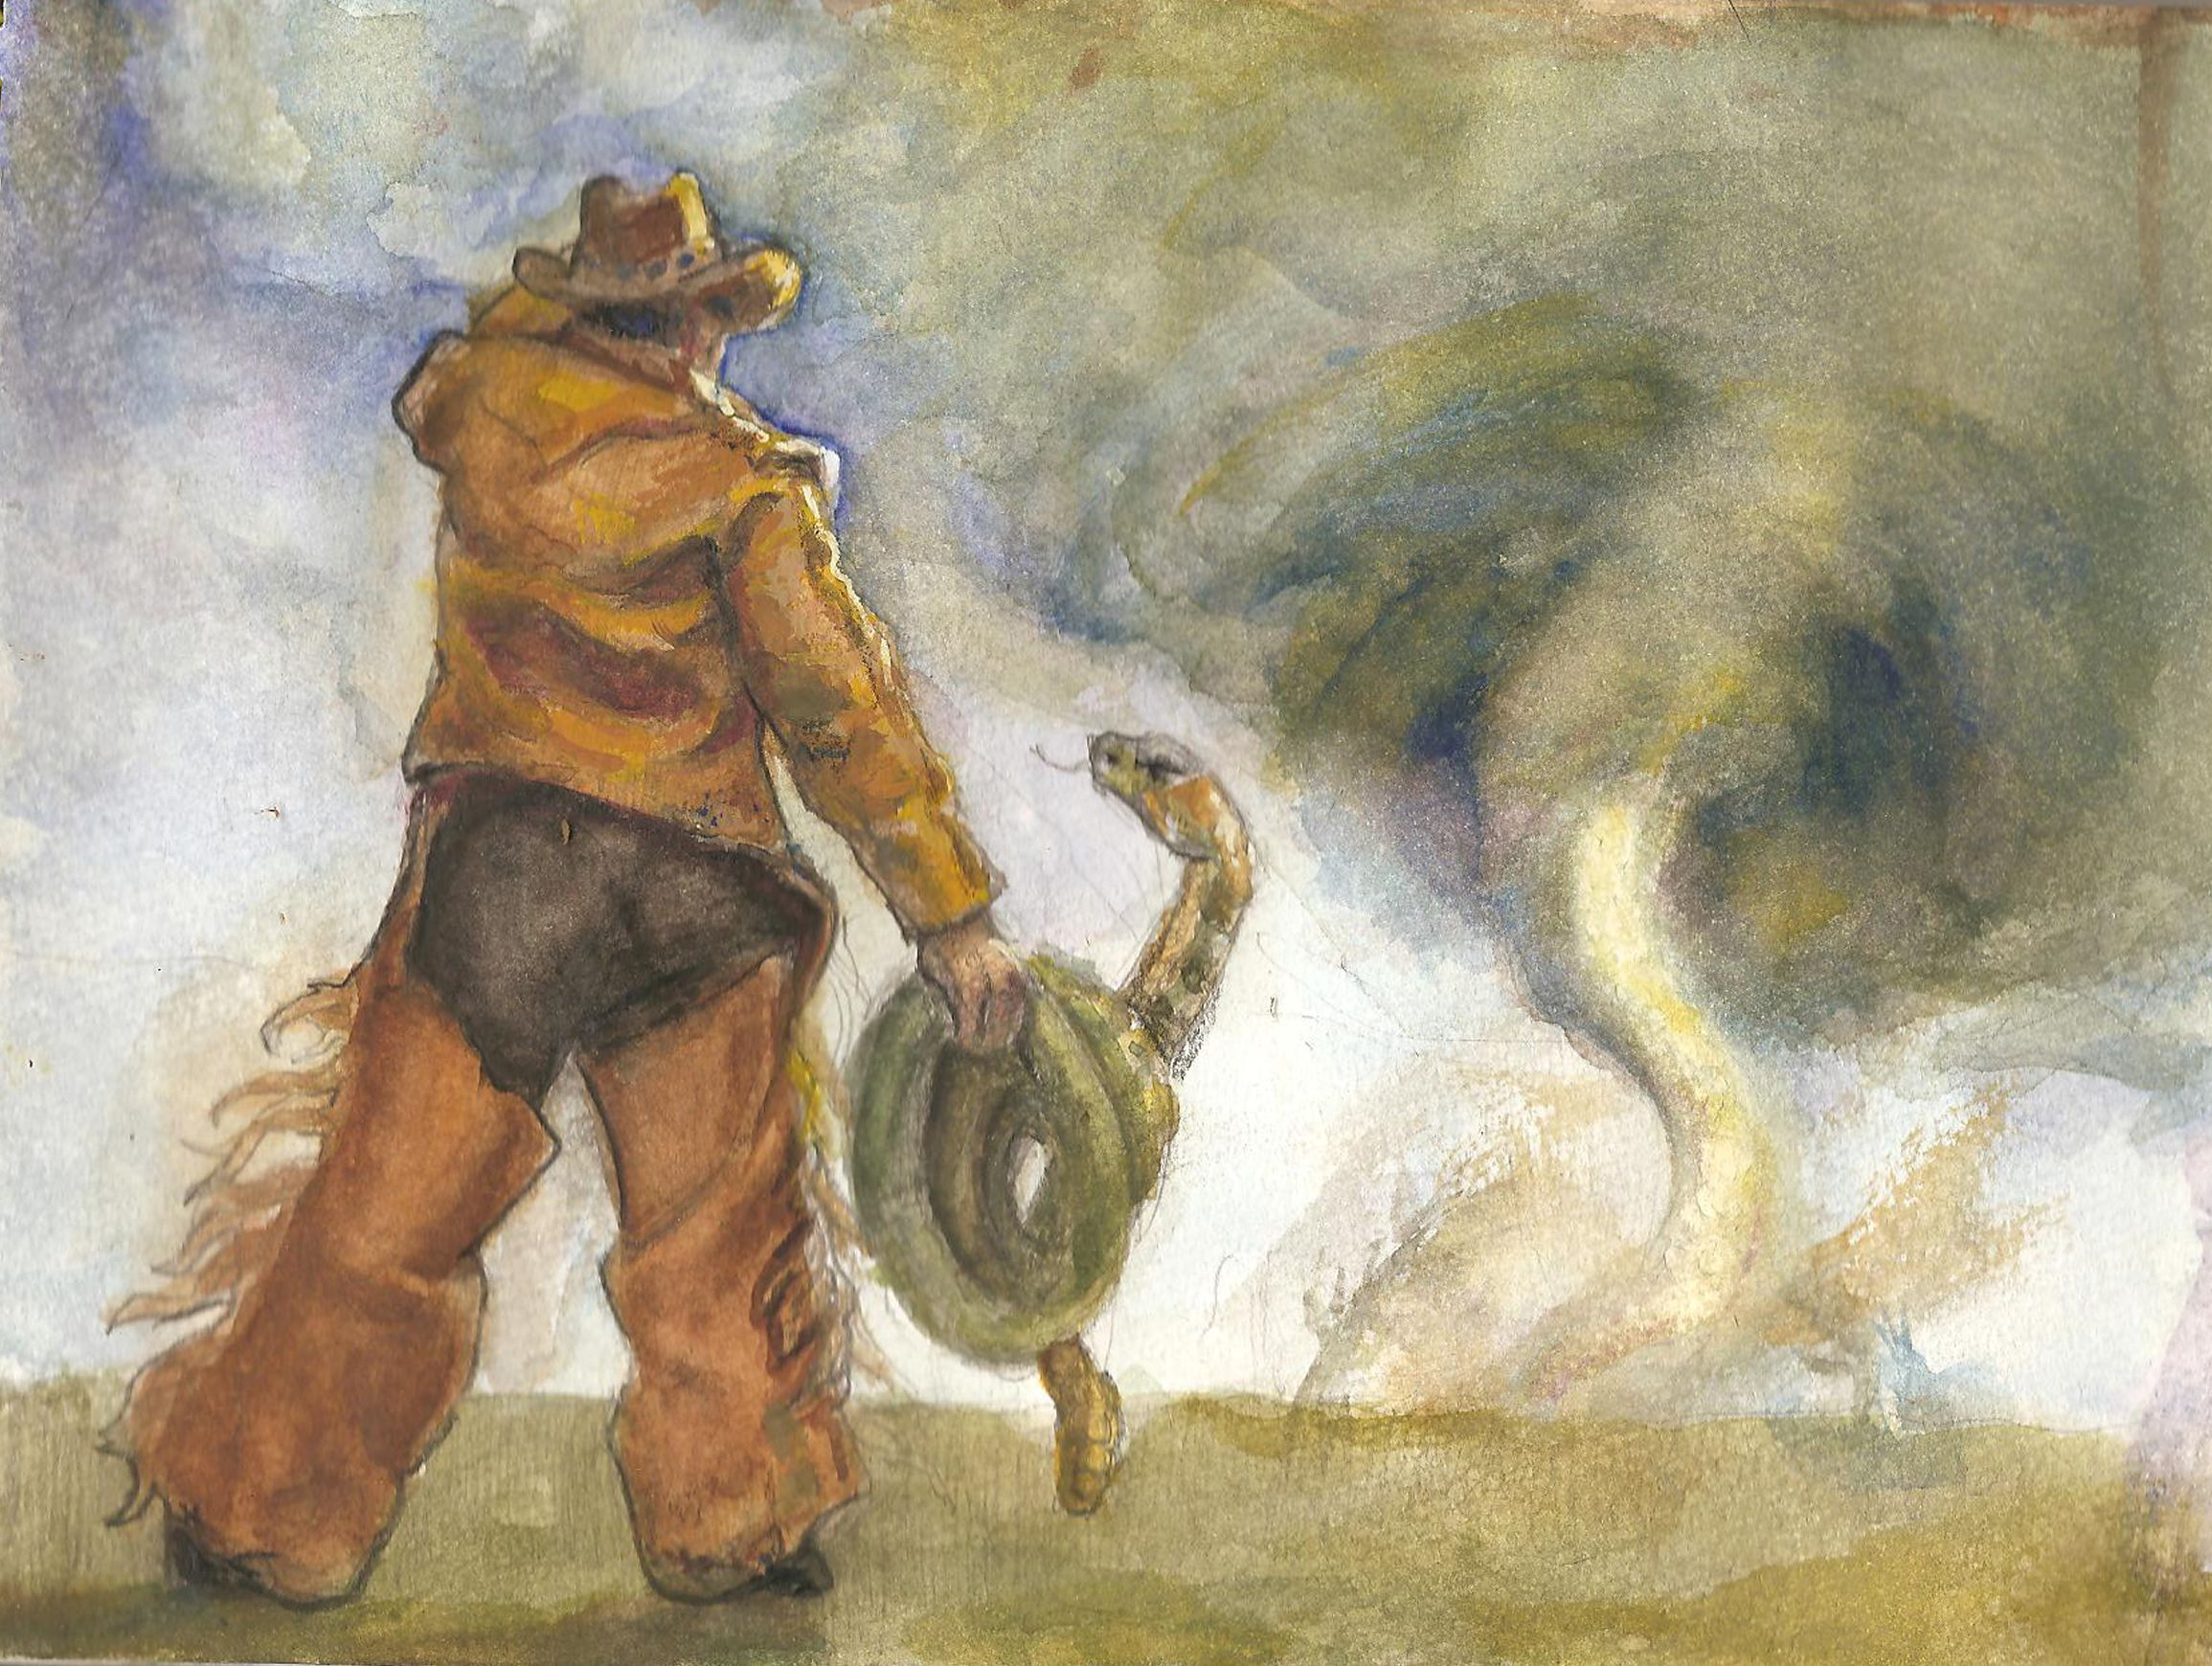 Pecos Bill American Cowboy Apocryphally Immortalized In